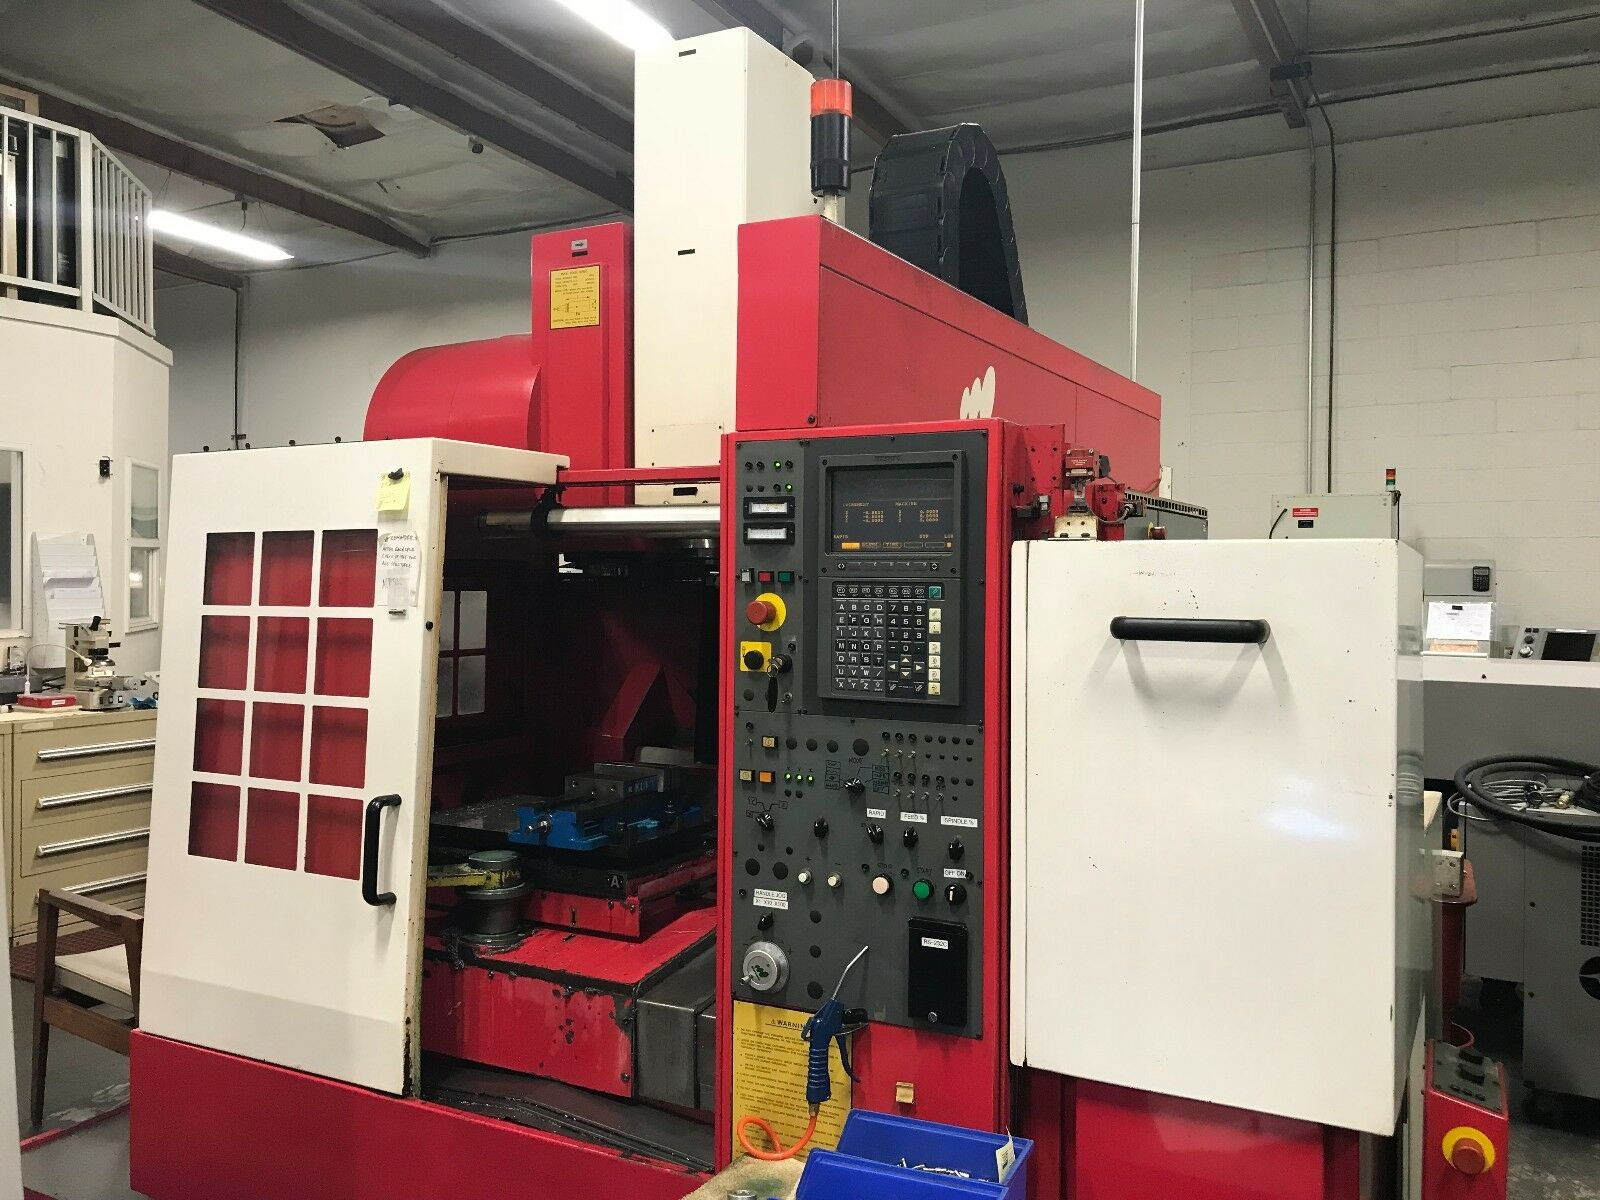 """Specifications: Travel:  X-Axis 21.65"""" Y-Axis 16.10"""" Z-Axis 18.10"""" Table Size 23.6"""" x 14.9"""" (2) Spindle Speed 8000 RPM Spindle Taper BT 40 Spindle Nose to Table Top 5.9"""" - 24"""" Spindle Motor 10 HP Tools 30 Table Load Capacity 550 lbs. Rapid Traverse"""